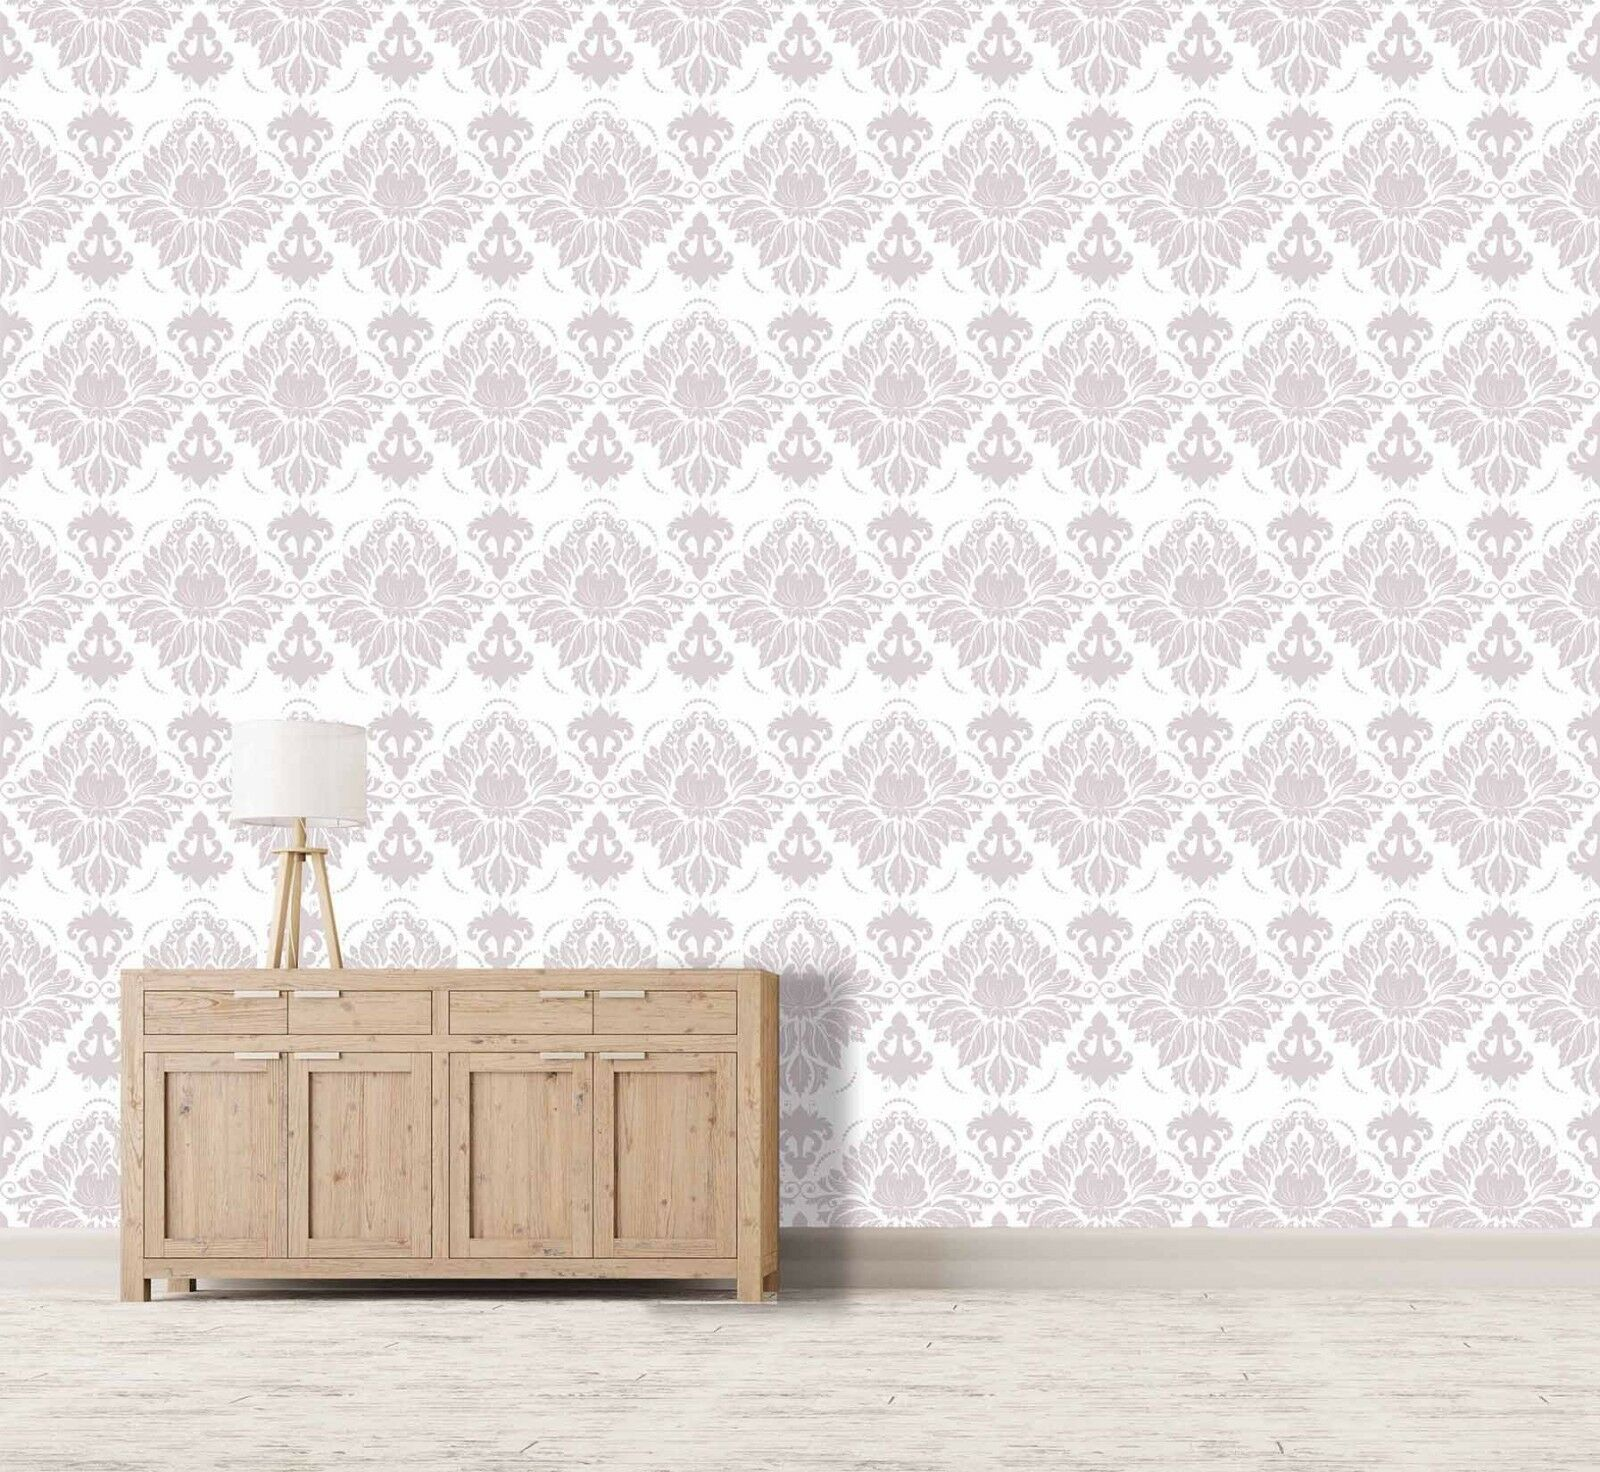 3D Fashion Pattern 433 Wall Paper Wall Print Decal Wall Deco Indoor Wall Murals